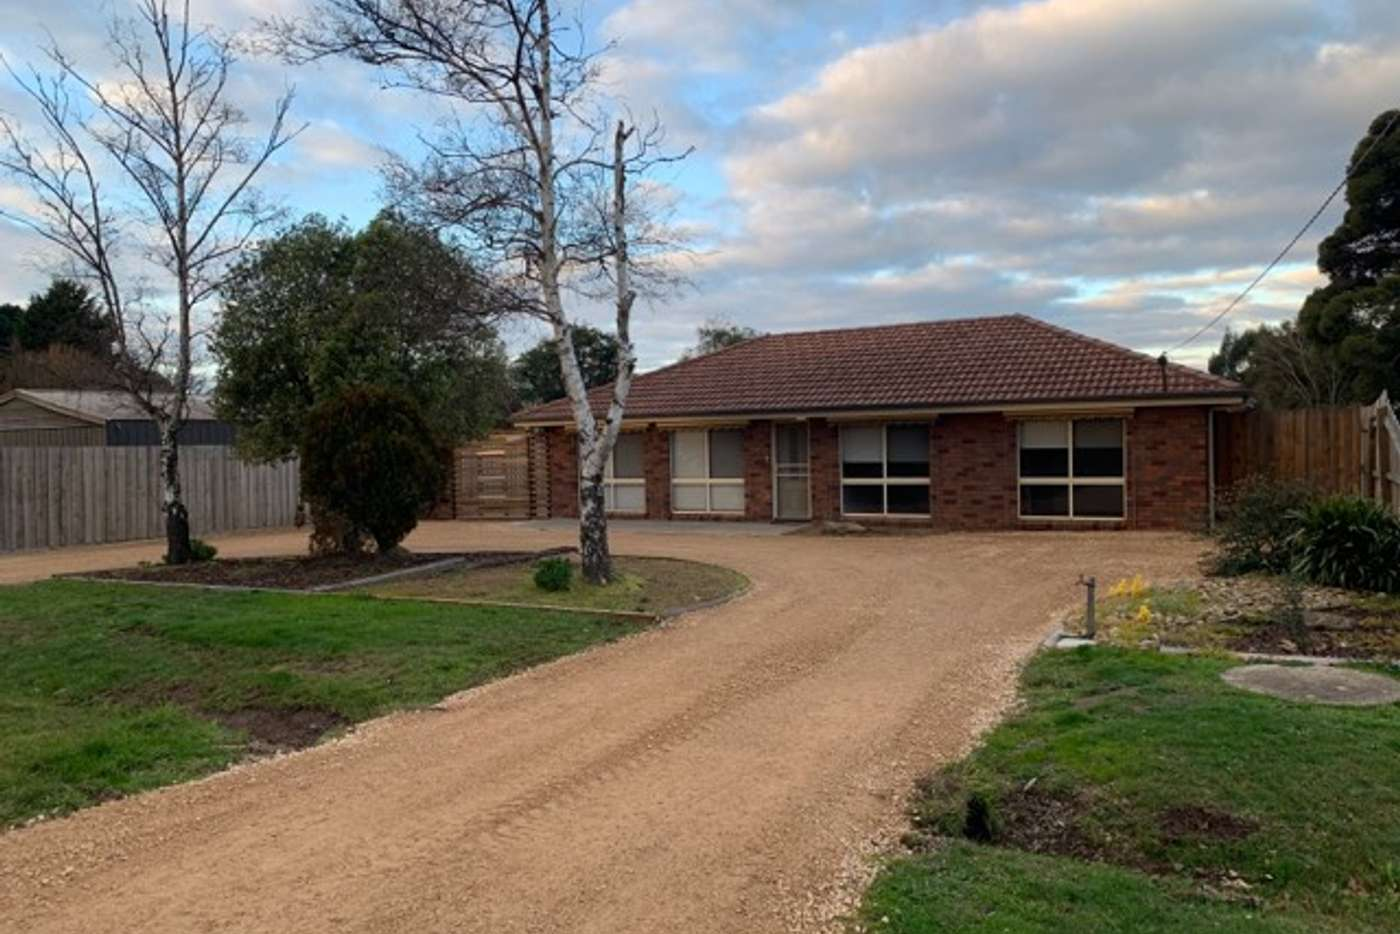 Main view of Homely house listing, 16 William Street, Romsey VIC 3434